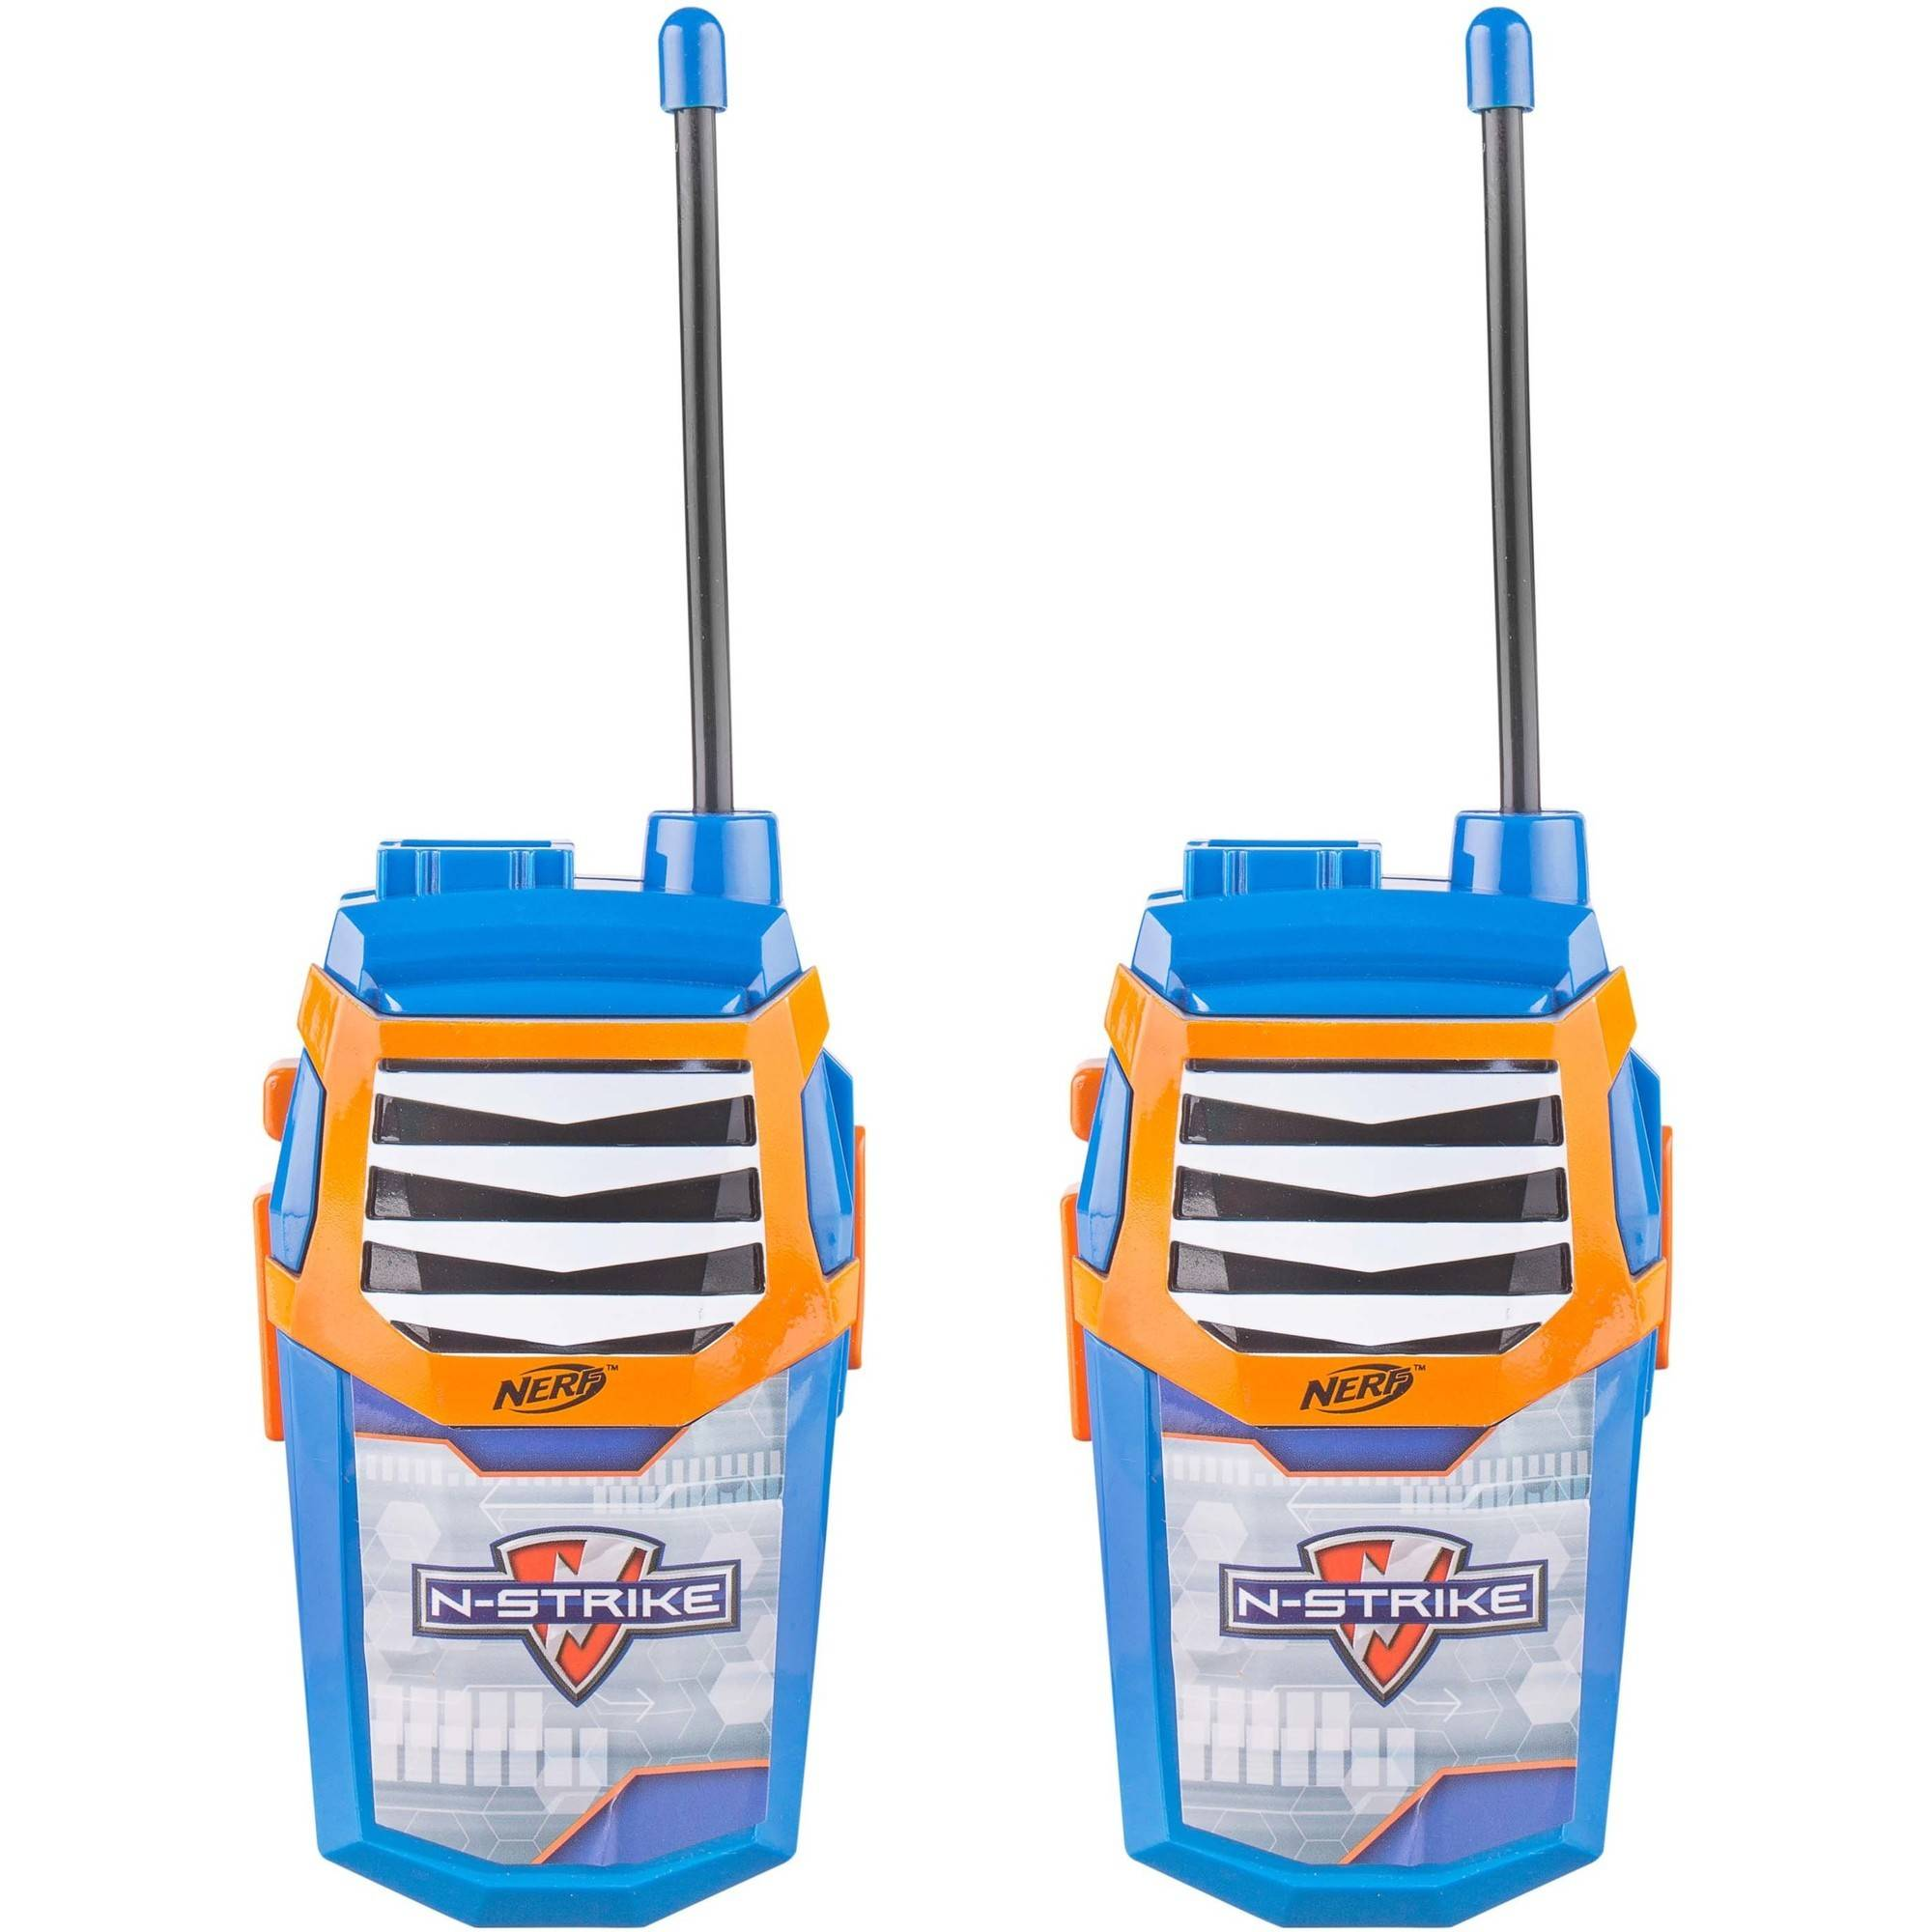 Nerf Night Action 2-in-1 Walkie Talkies with Built In Flashlight by Nerf